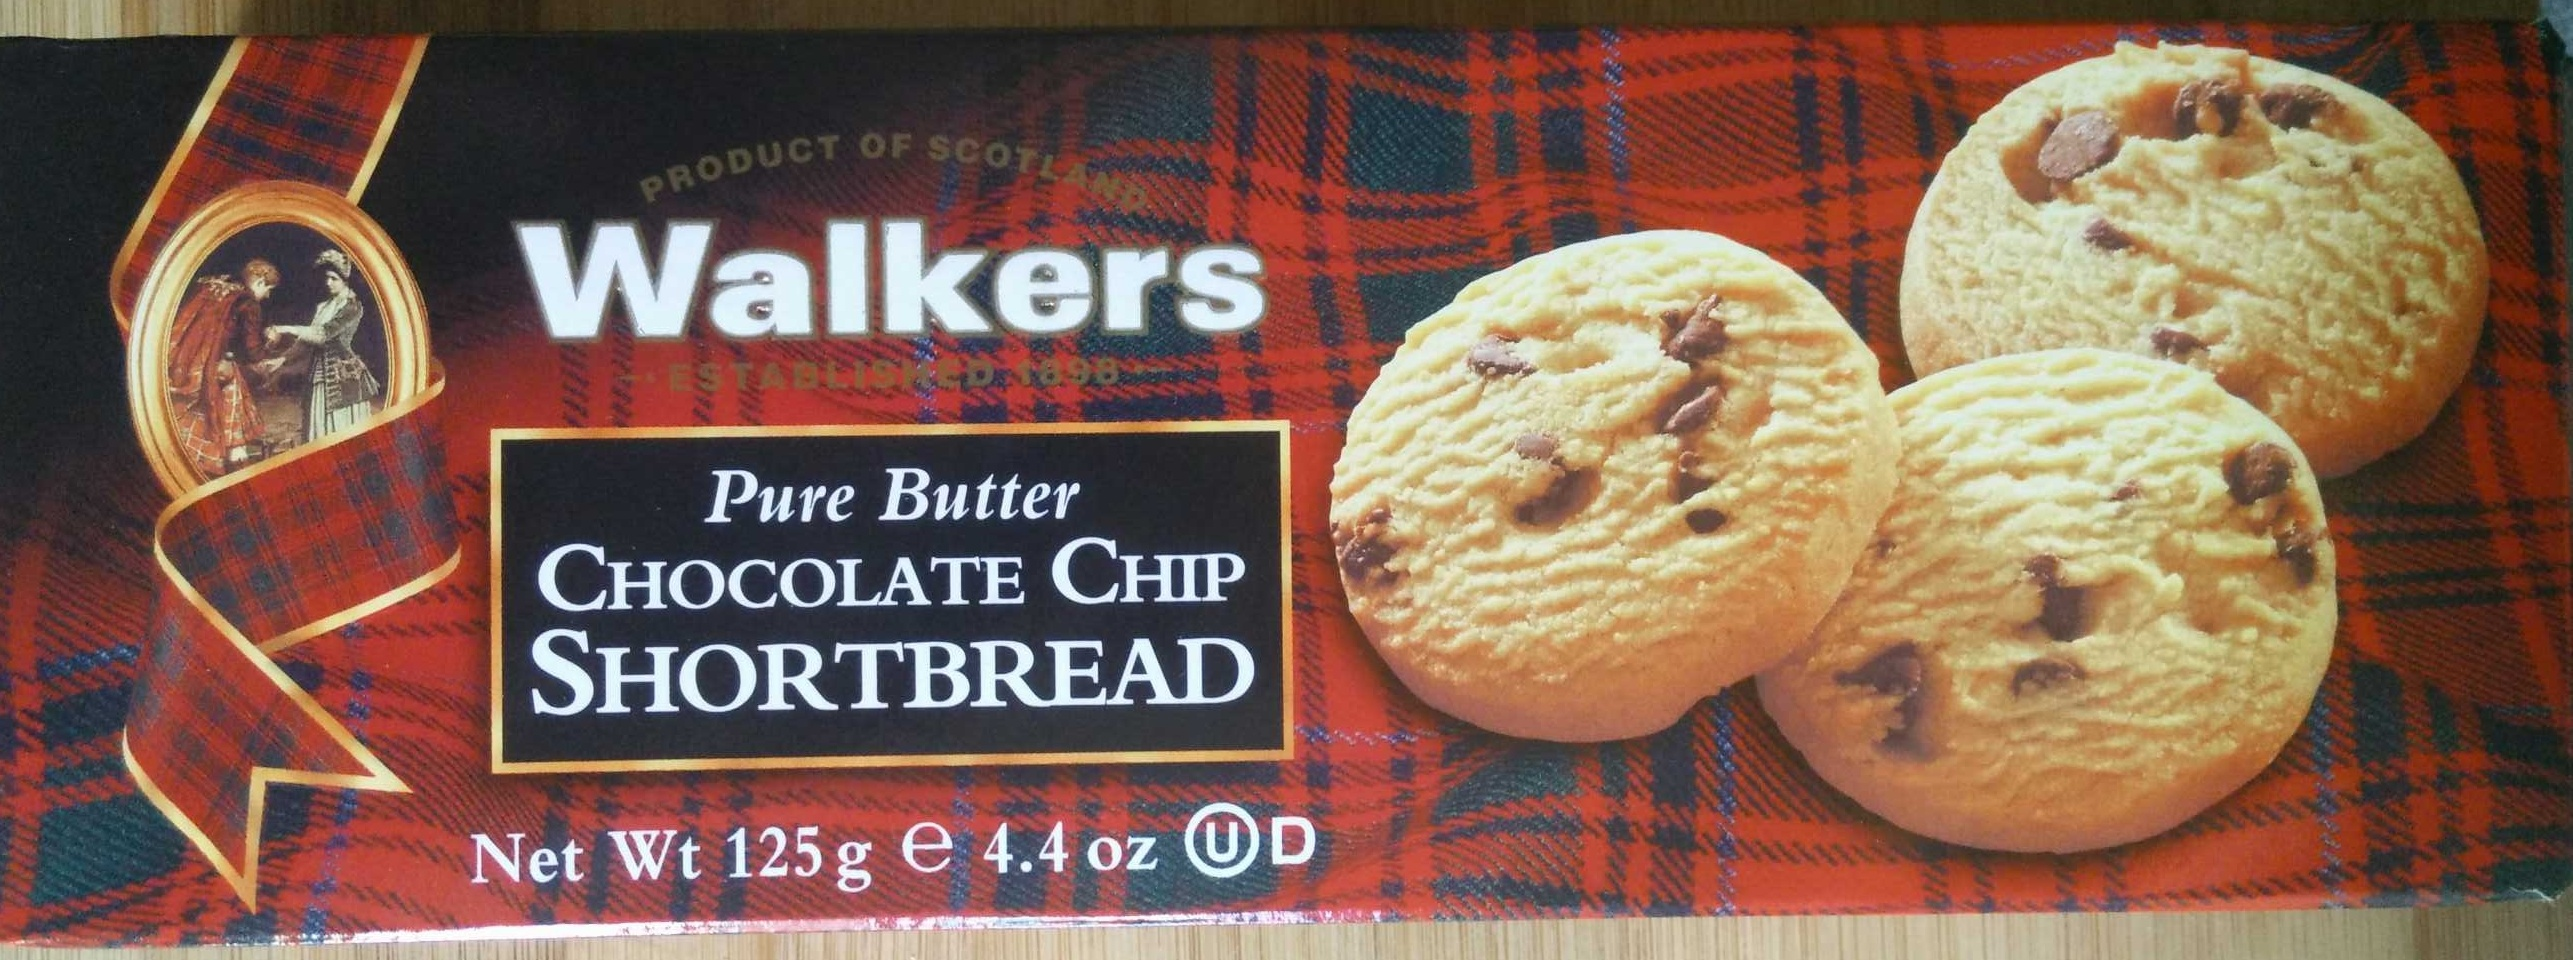 Pure butter shortbread - Product